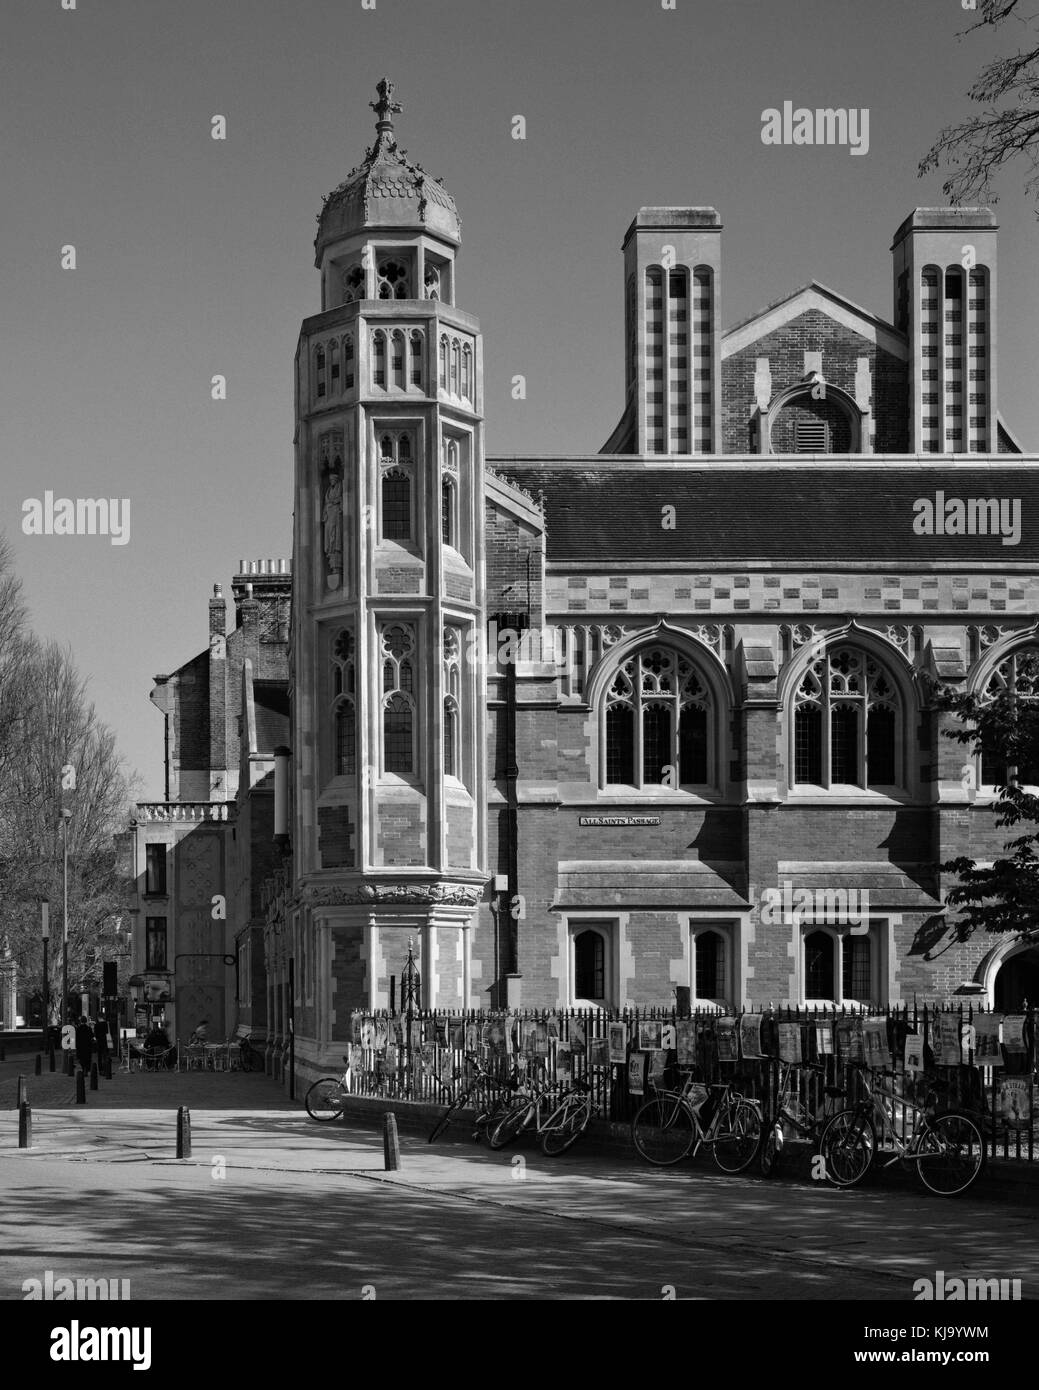 The Old Divinity School of St John's College Cambridge - Stock Image